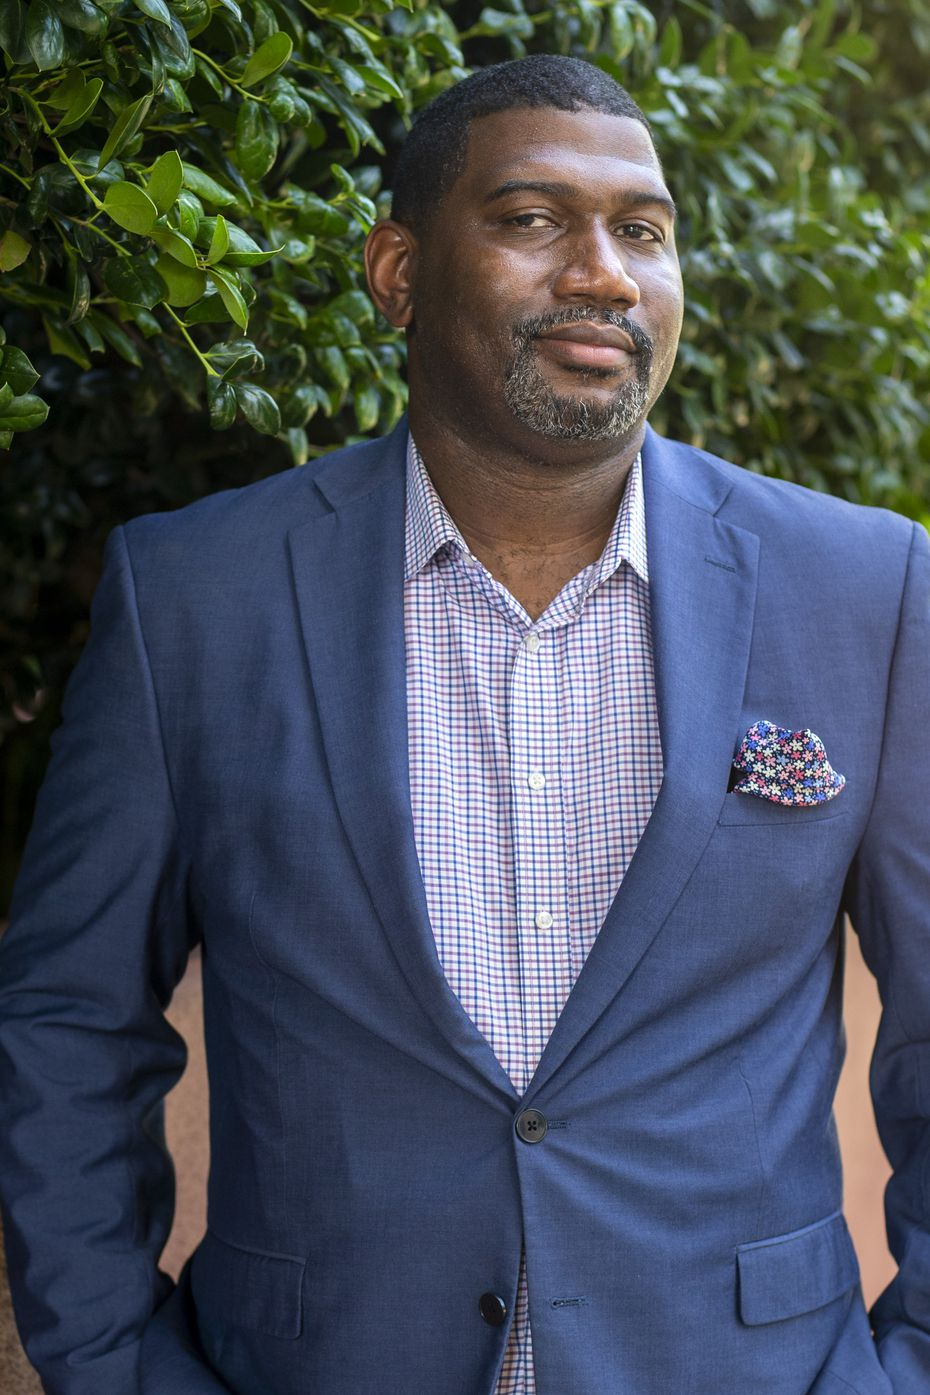 Vice President of All Stars Project, Inc. Antoine Joyce (Lynda M. Gonzalez/The Dallas Morning News)